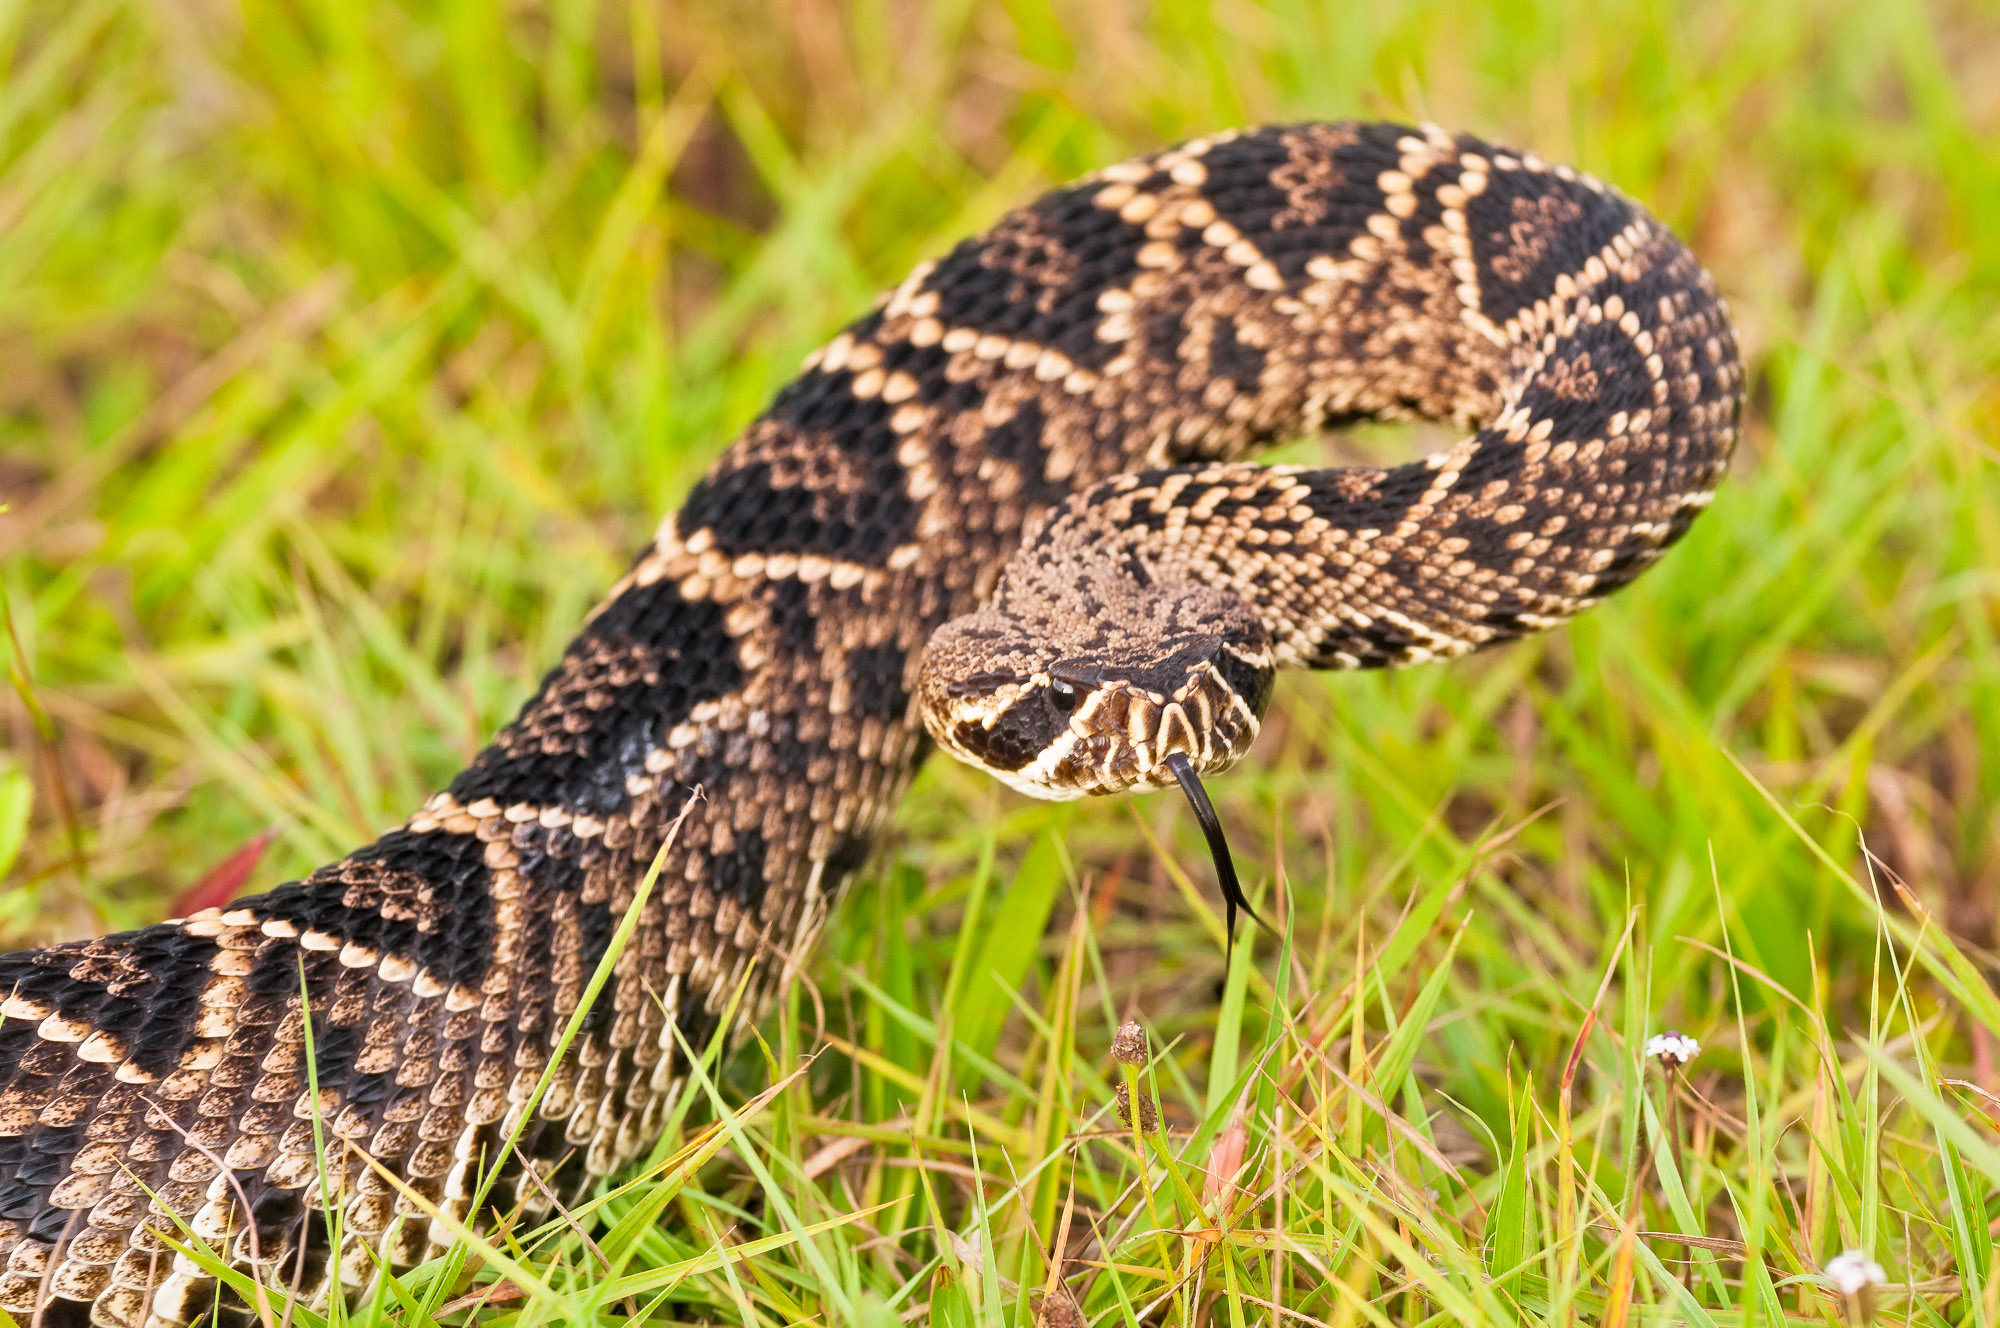 Eastern Diamondback Rattlesnake - Everglades National Park, Florida